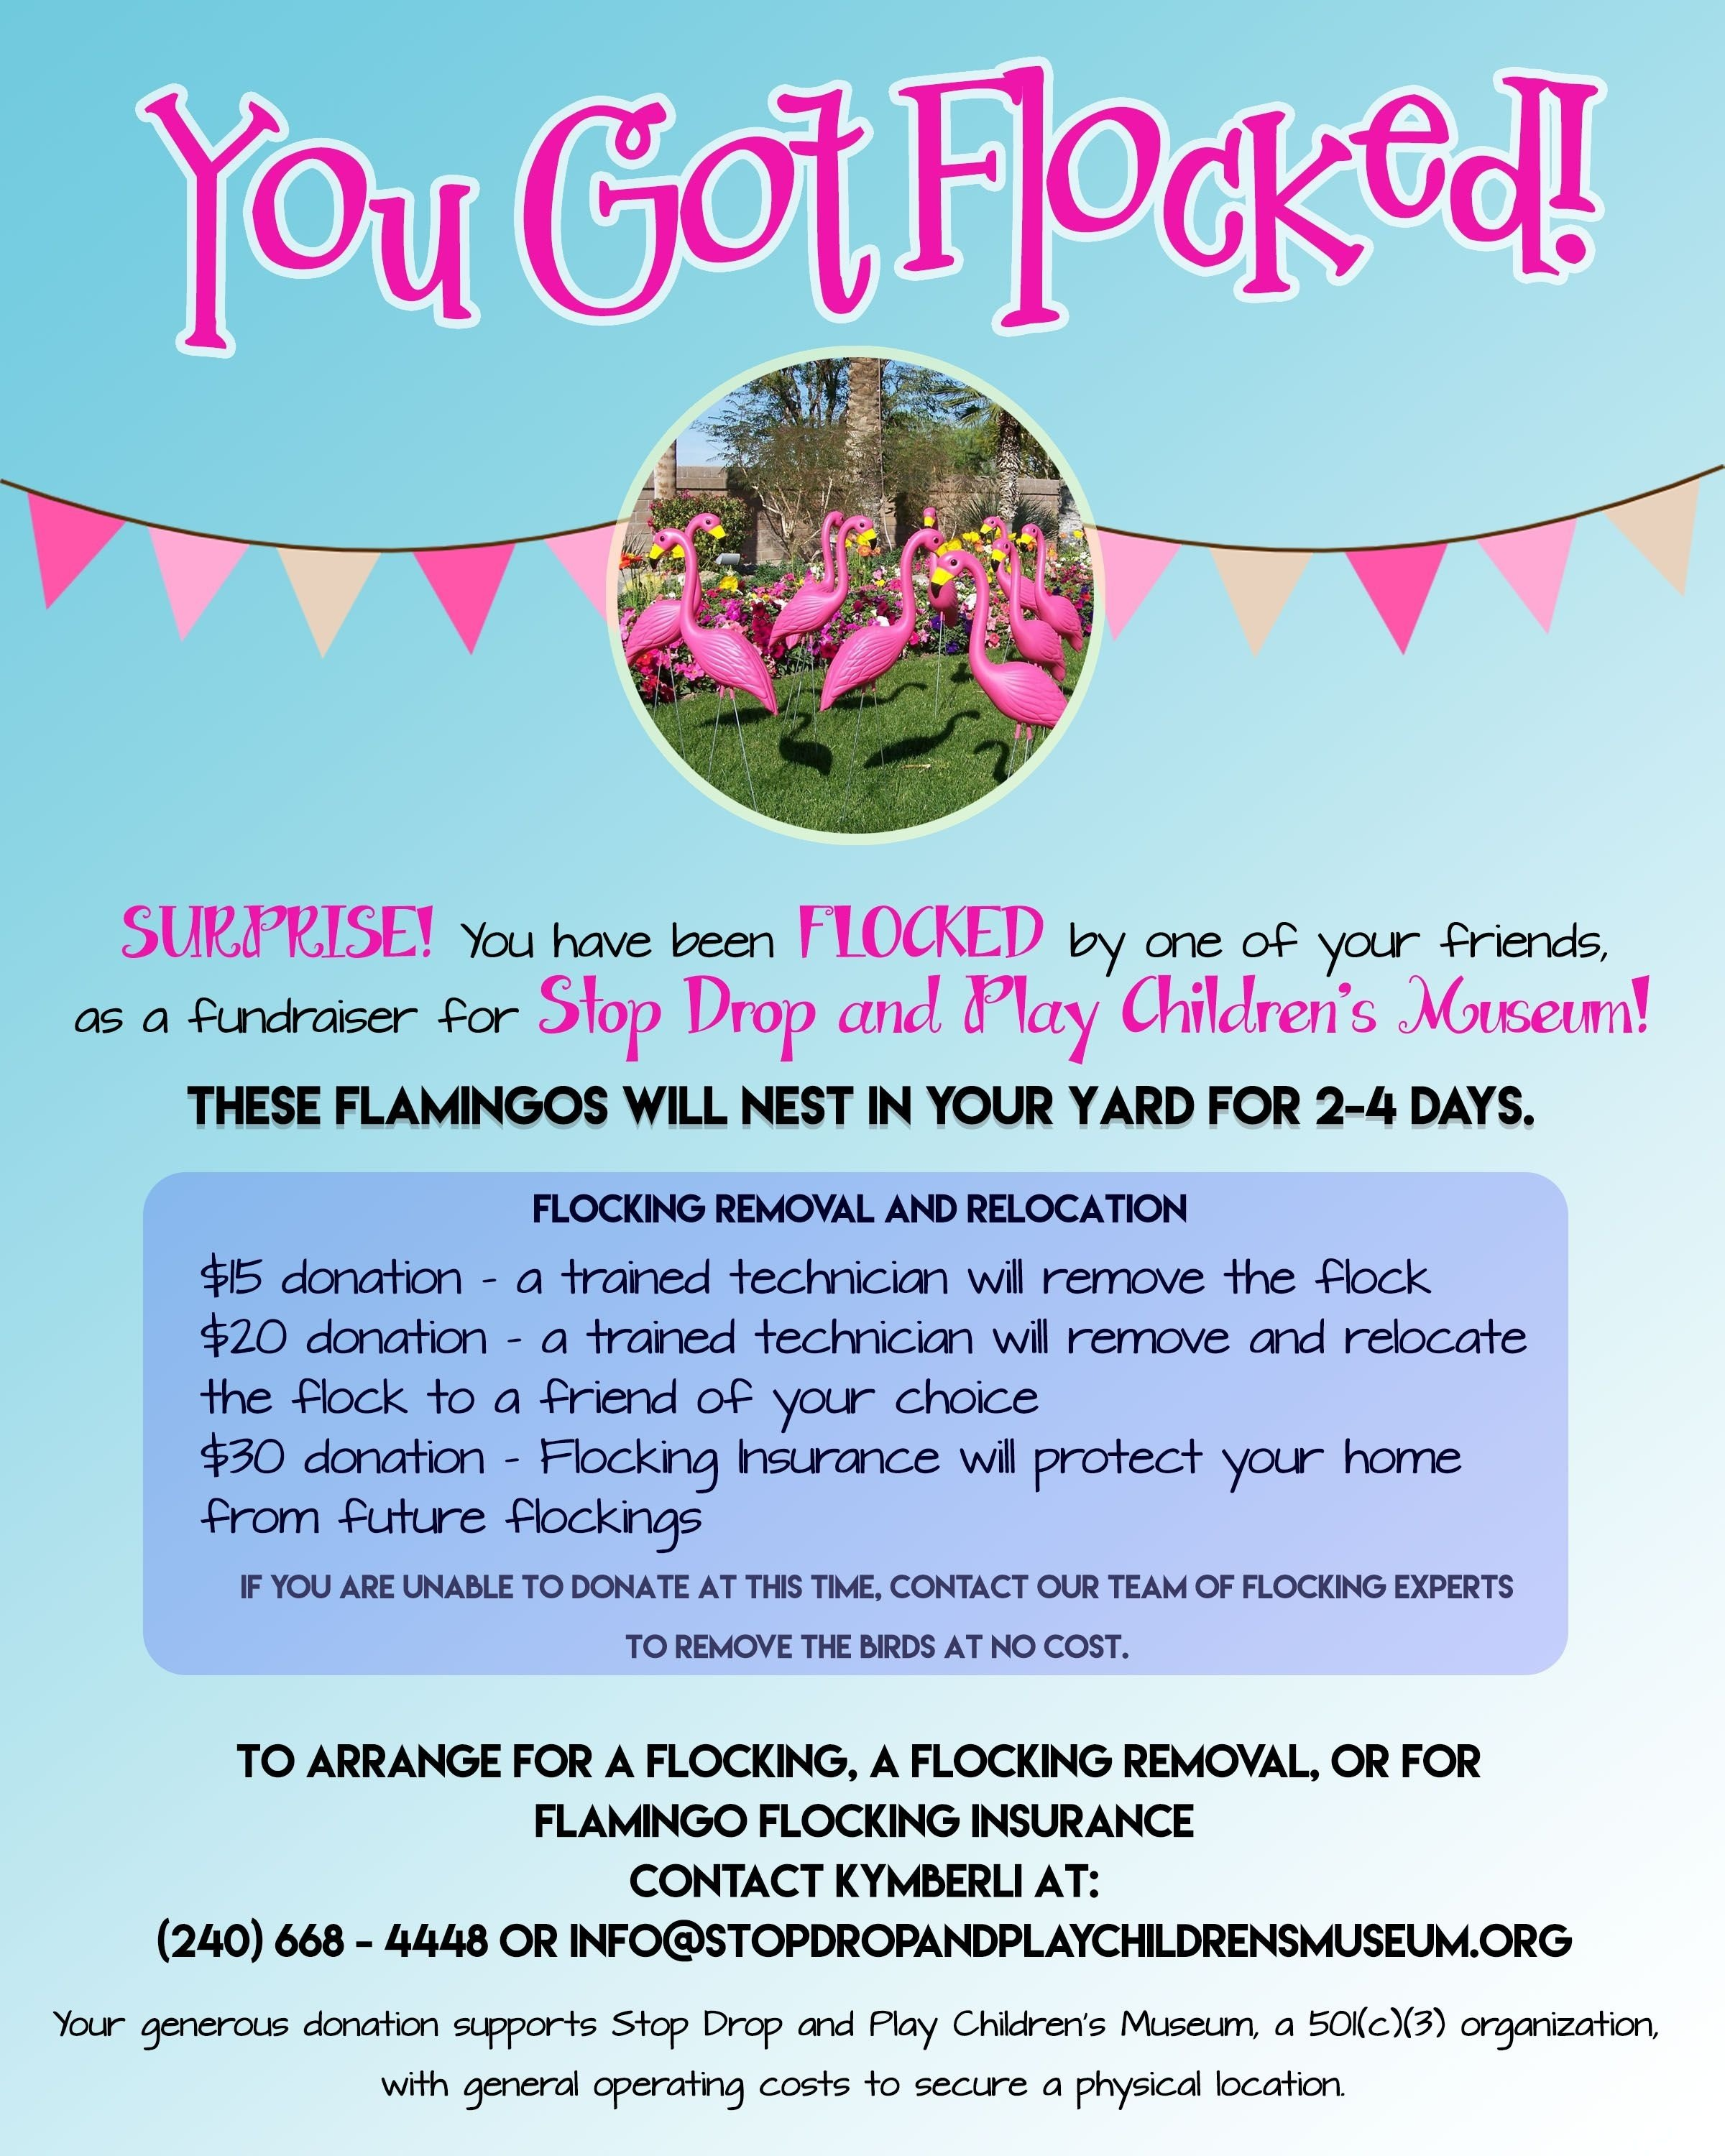 10 Spectacular Fundraising Ideas For Church Youth Groups flamingo flocking fundraiser stop drop and play childrens museum 1 2021